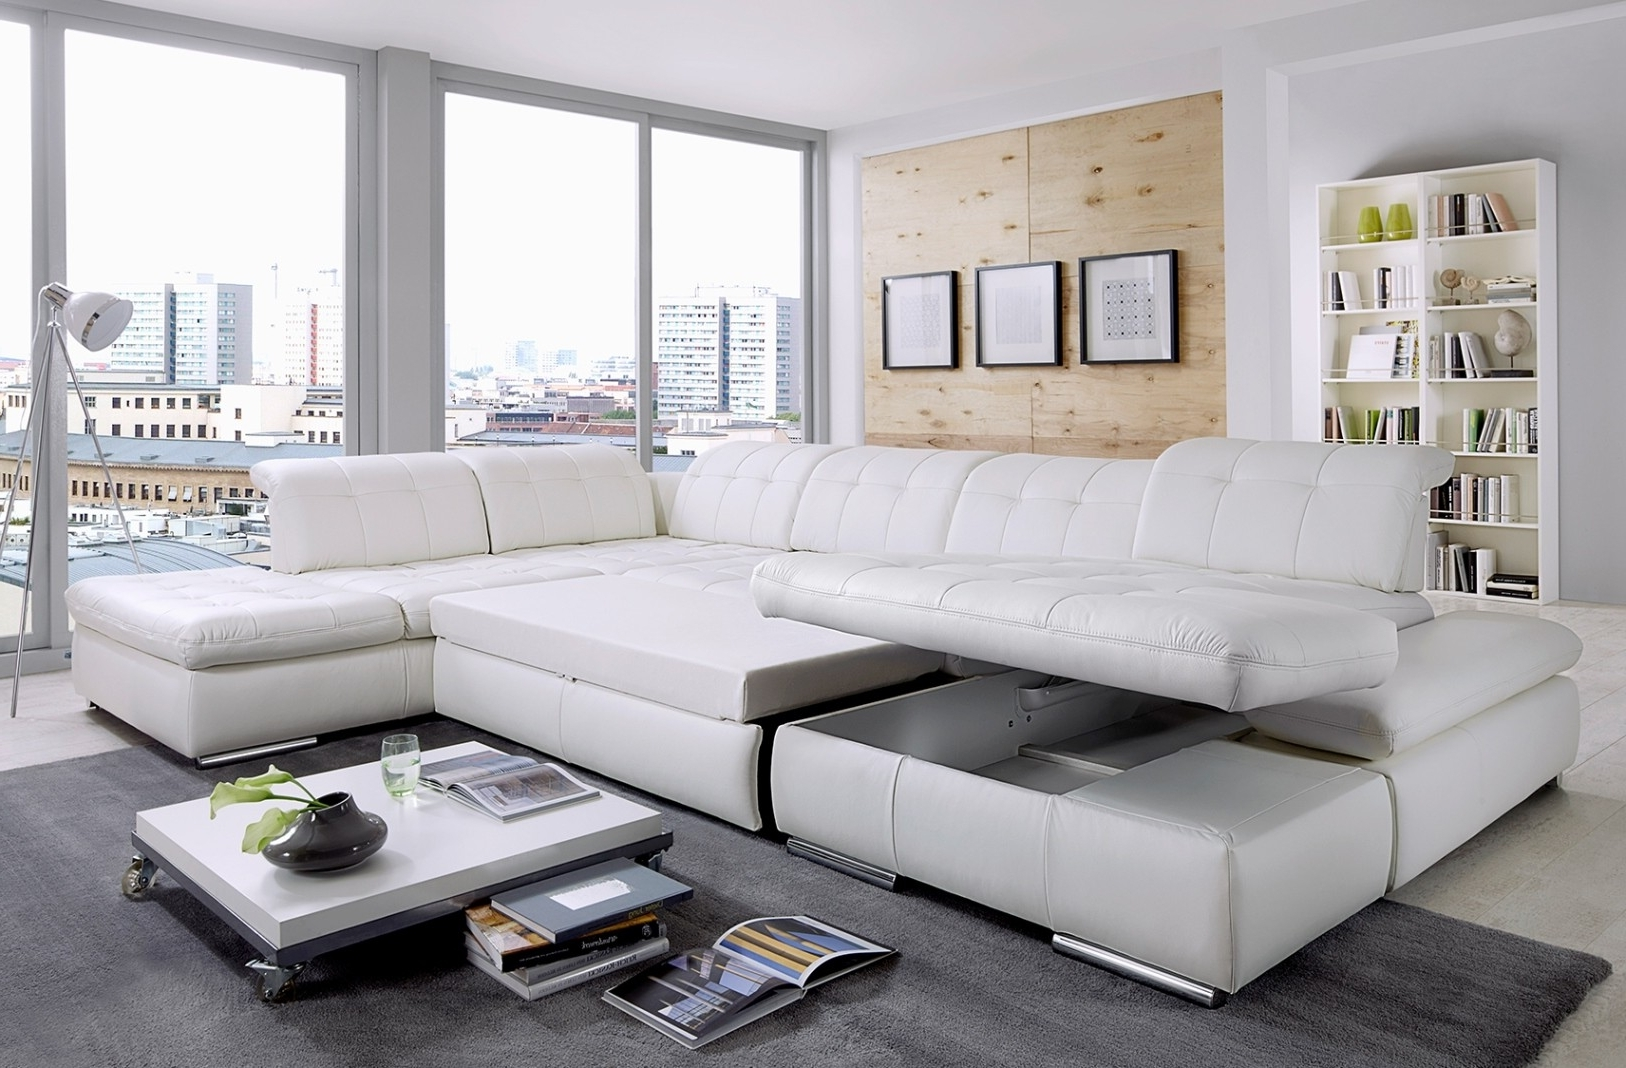 Nh Sectional Sofas Inside Current Best Modern Contemporary Furniture Stores Orlando Miami Florida Fl (View 9 of 20)